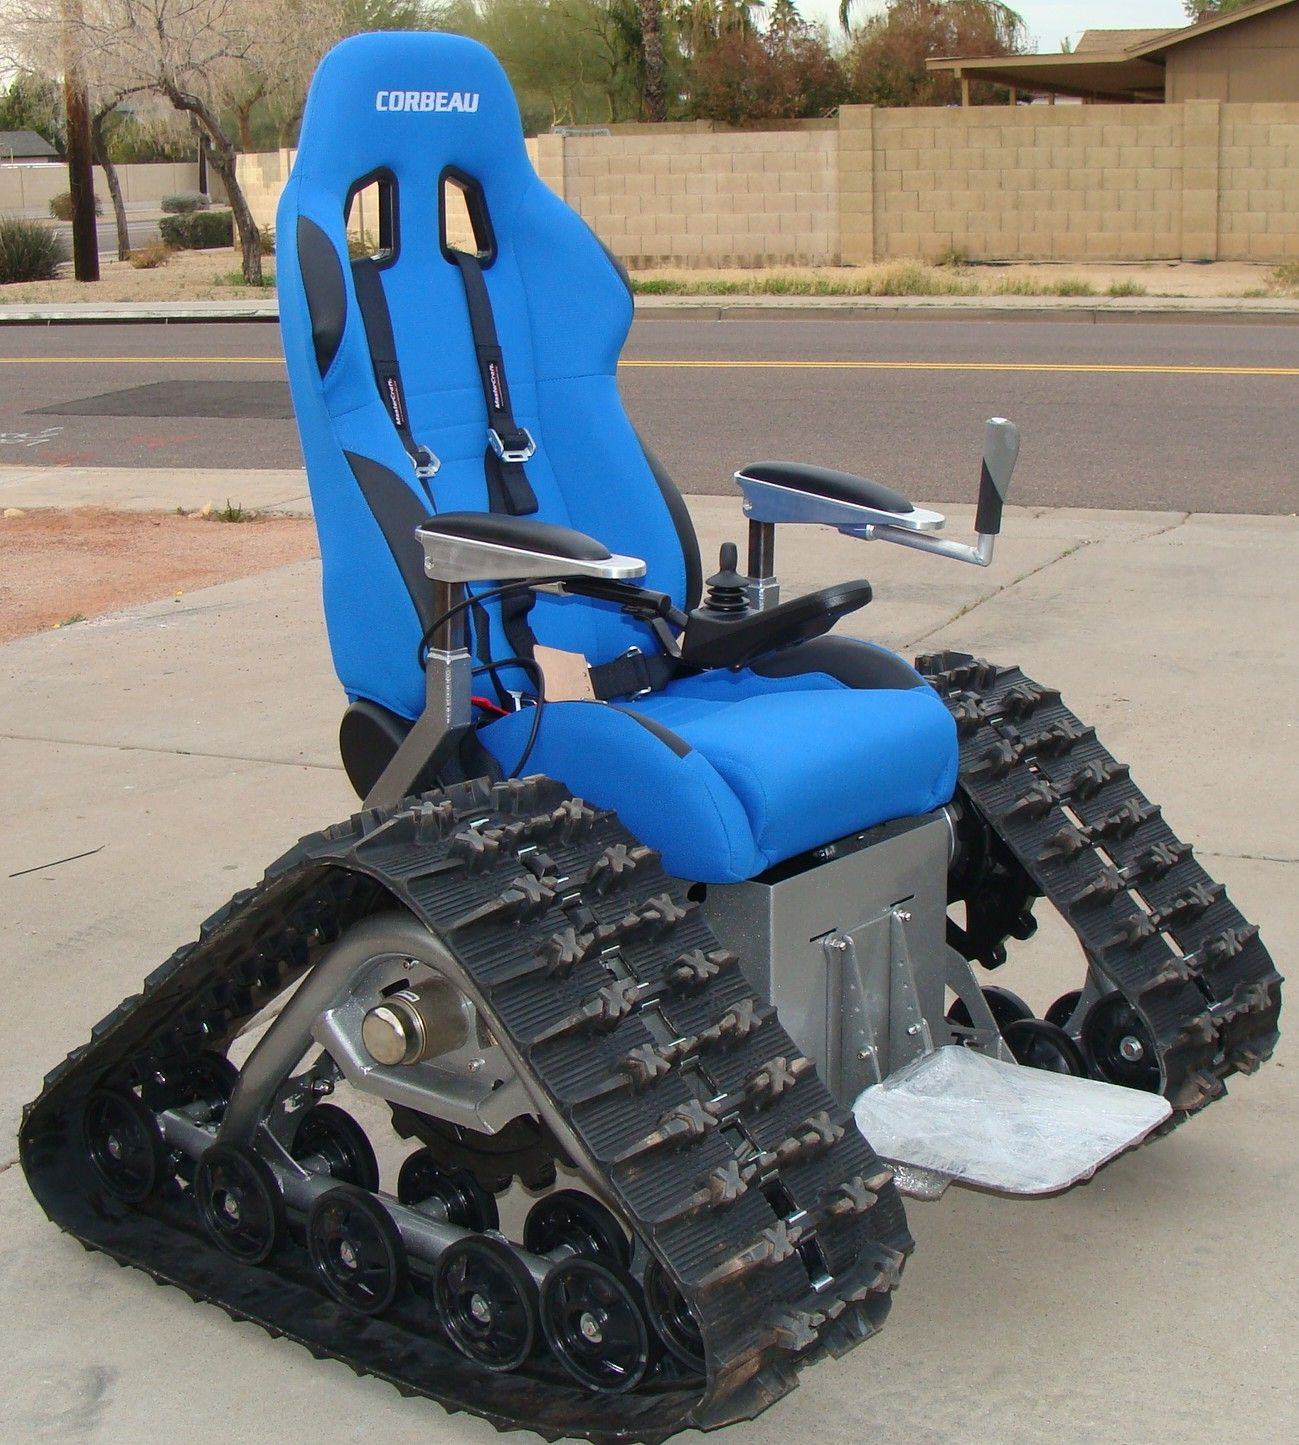 Tank Chair Wheelchair Target Accent Chairs The For Preppers And Survivalists See It Believe Do Watch Thousands Of Spinal Cord Injury Videos At Spinalpedia Com